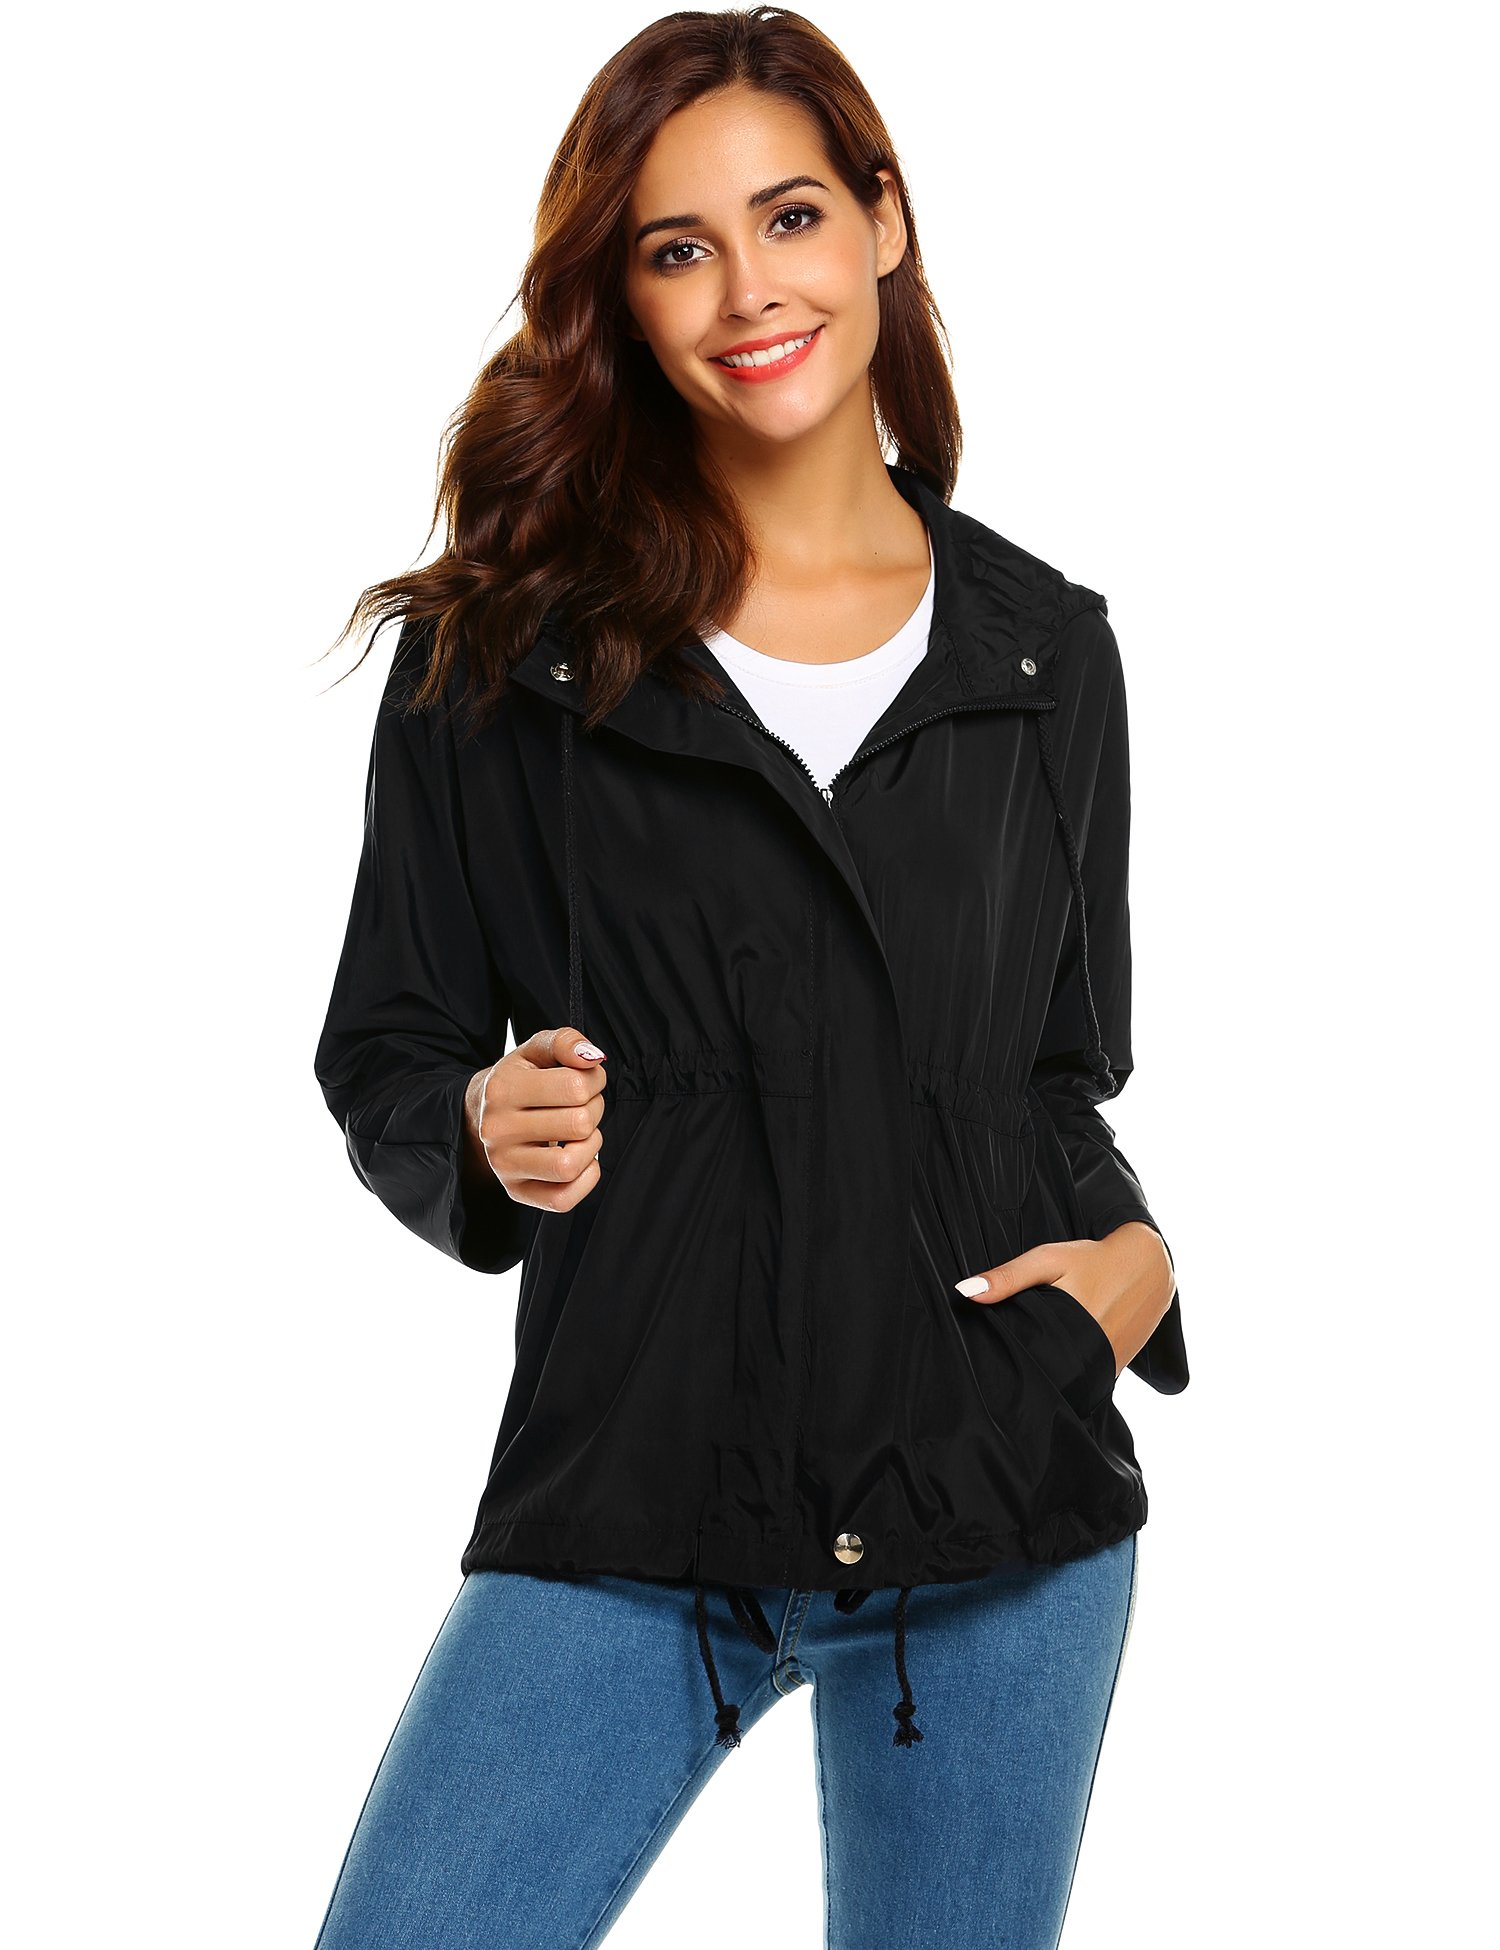 Zeagoo Women's Lightweight Waterproof Rain Coat Hooded Active Outdoor Windbreaker Jacket, Black,Medium